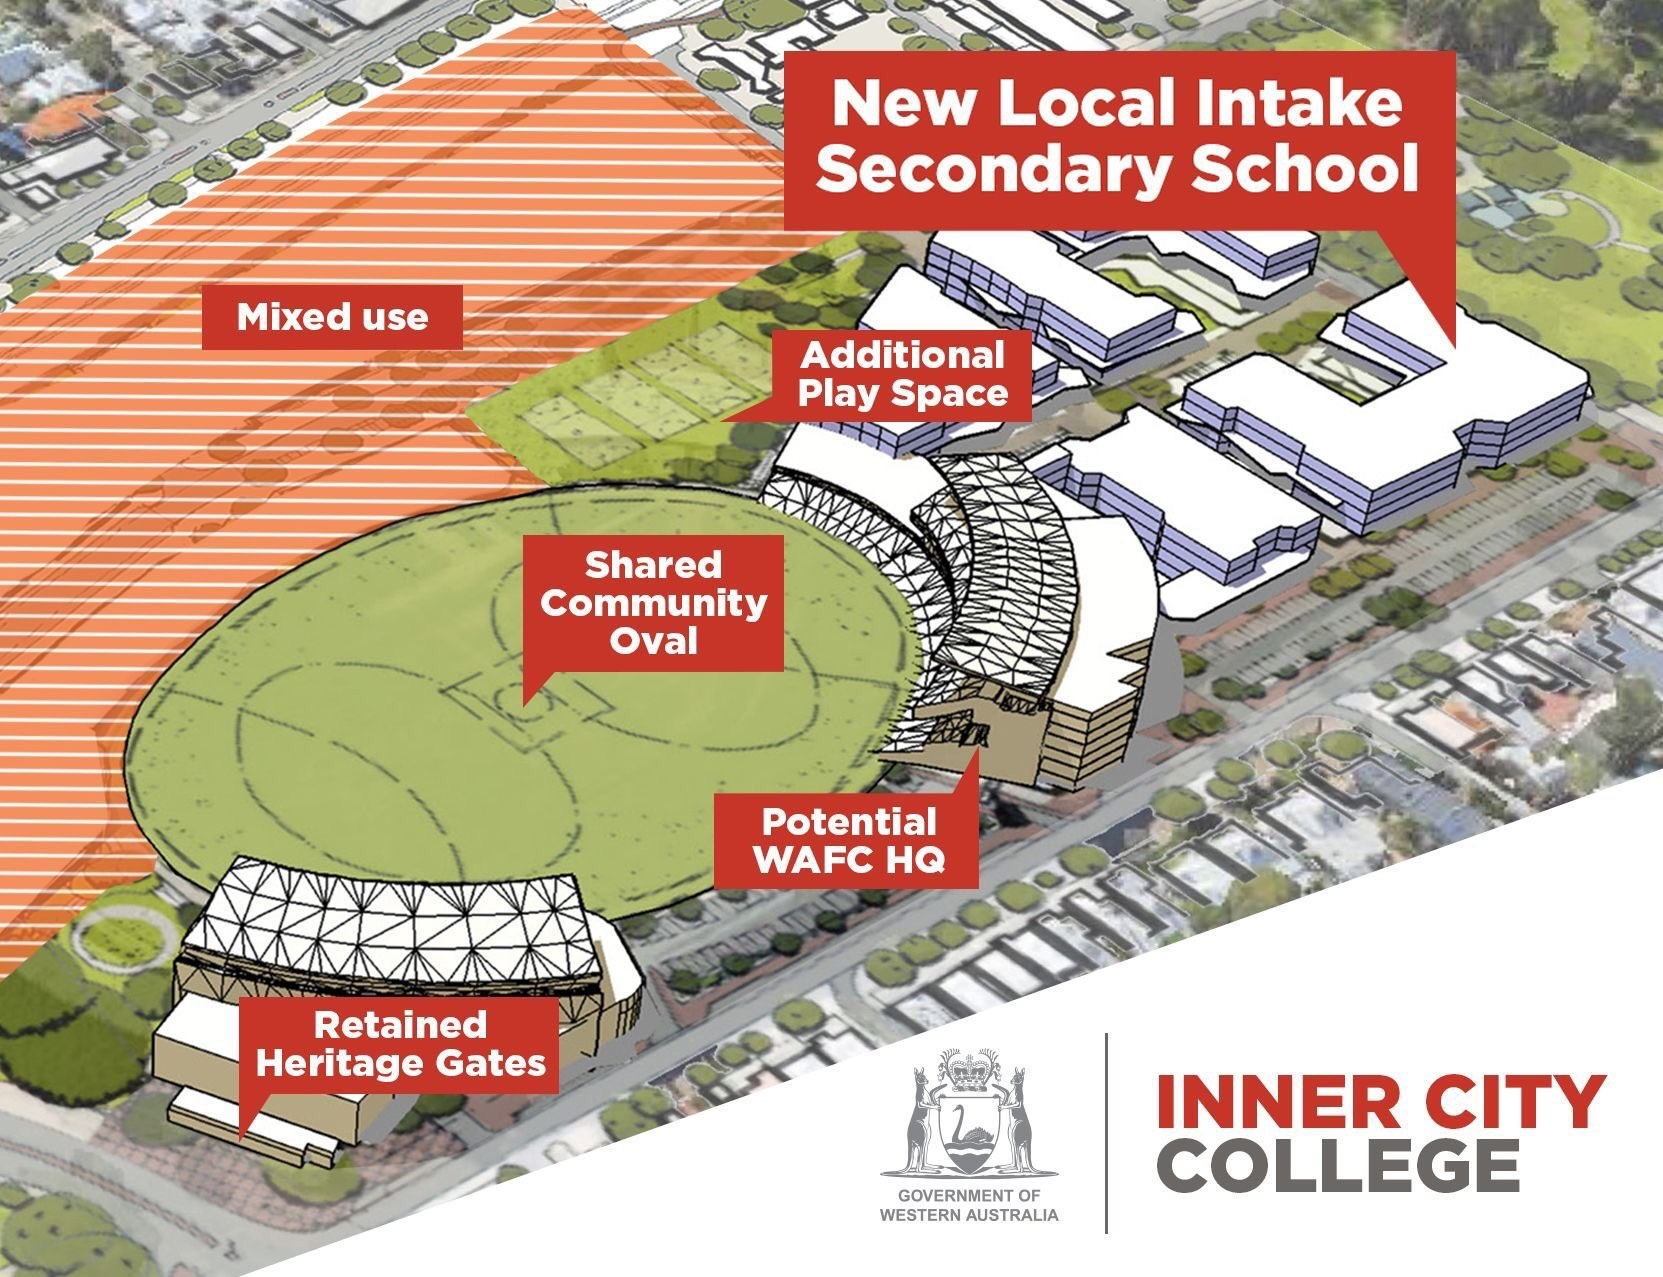 Artist's impression of the new school for Subiaco.